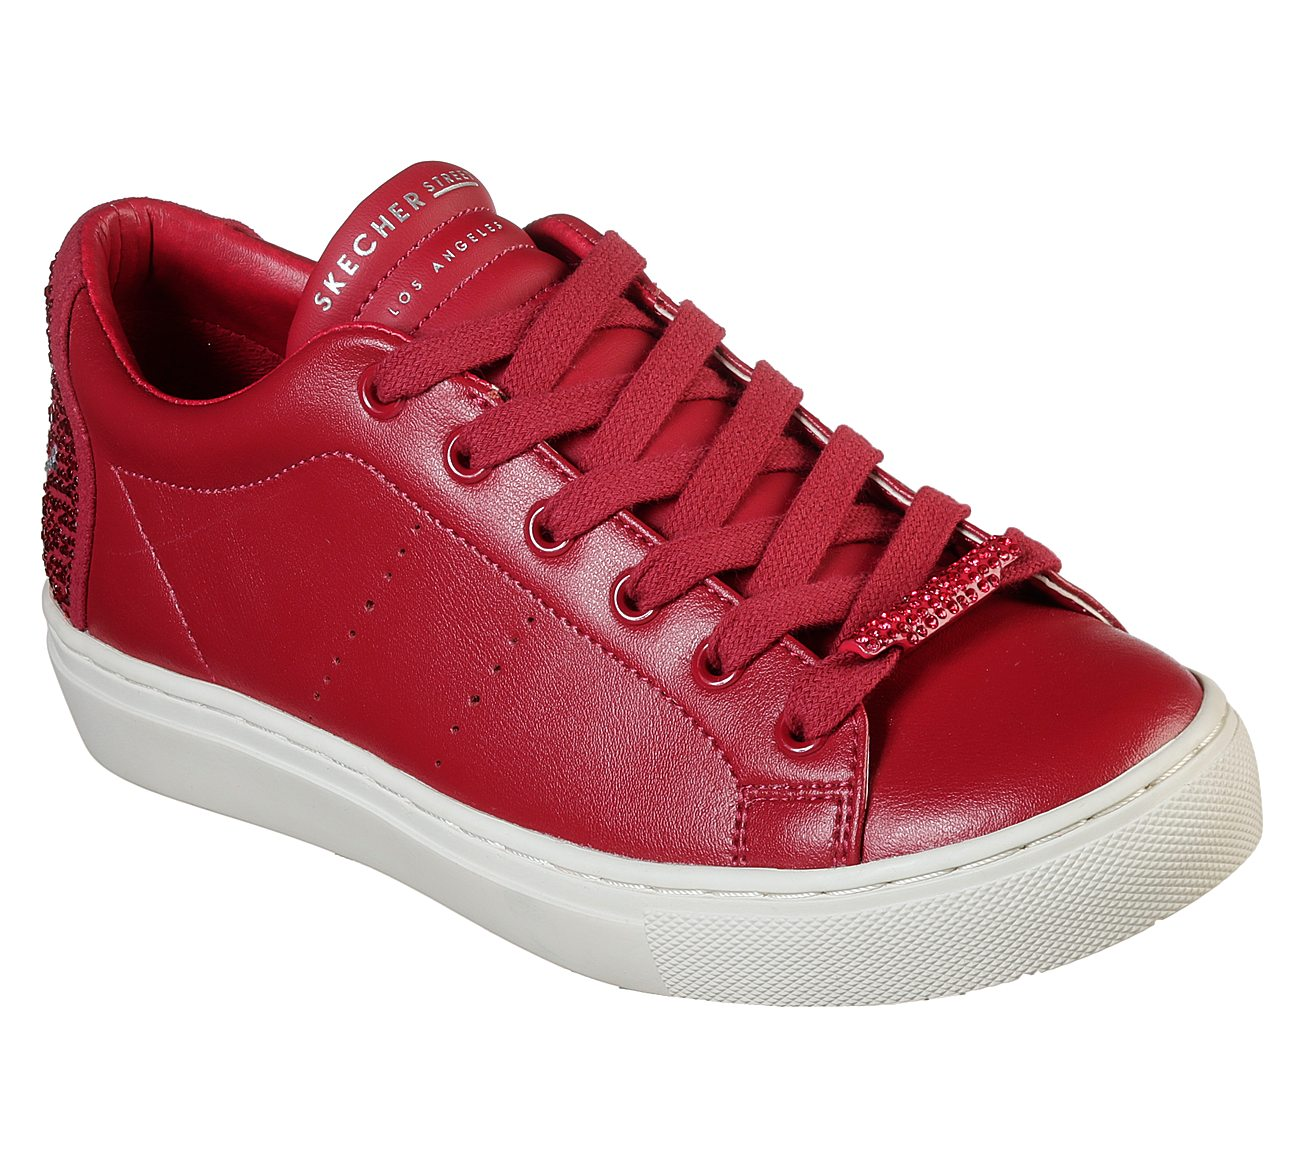 8c2f1a05a00 Buy SKECHERS Side Street - B Happy SKECHER Street Shoes only  49.00